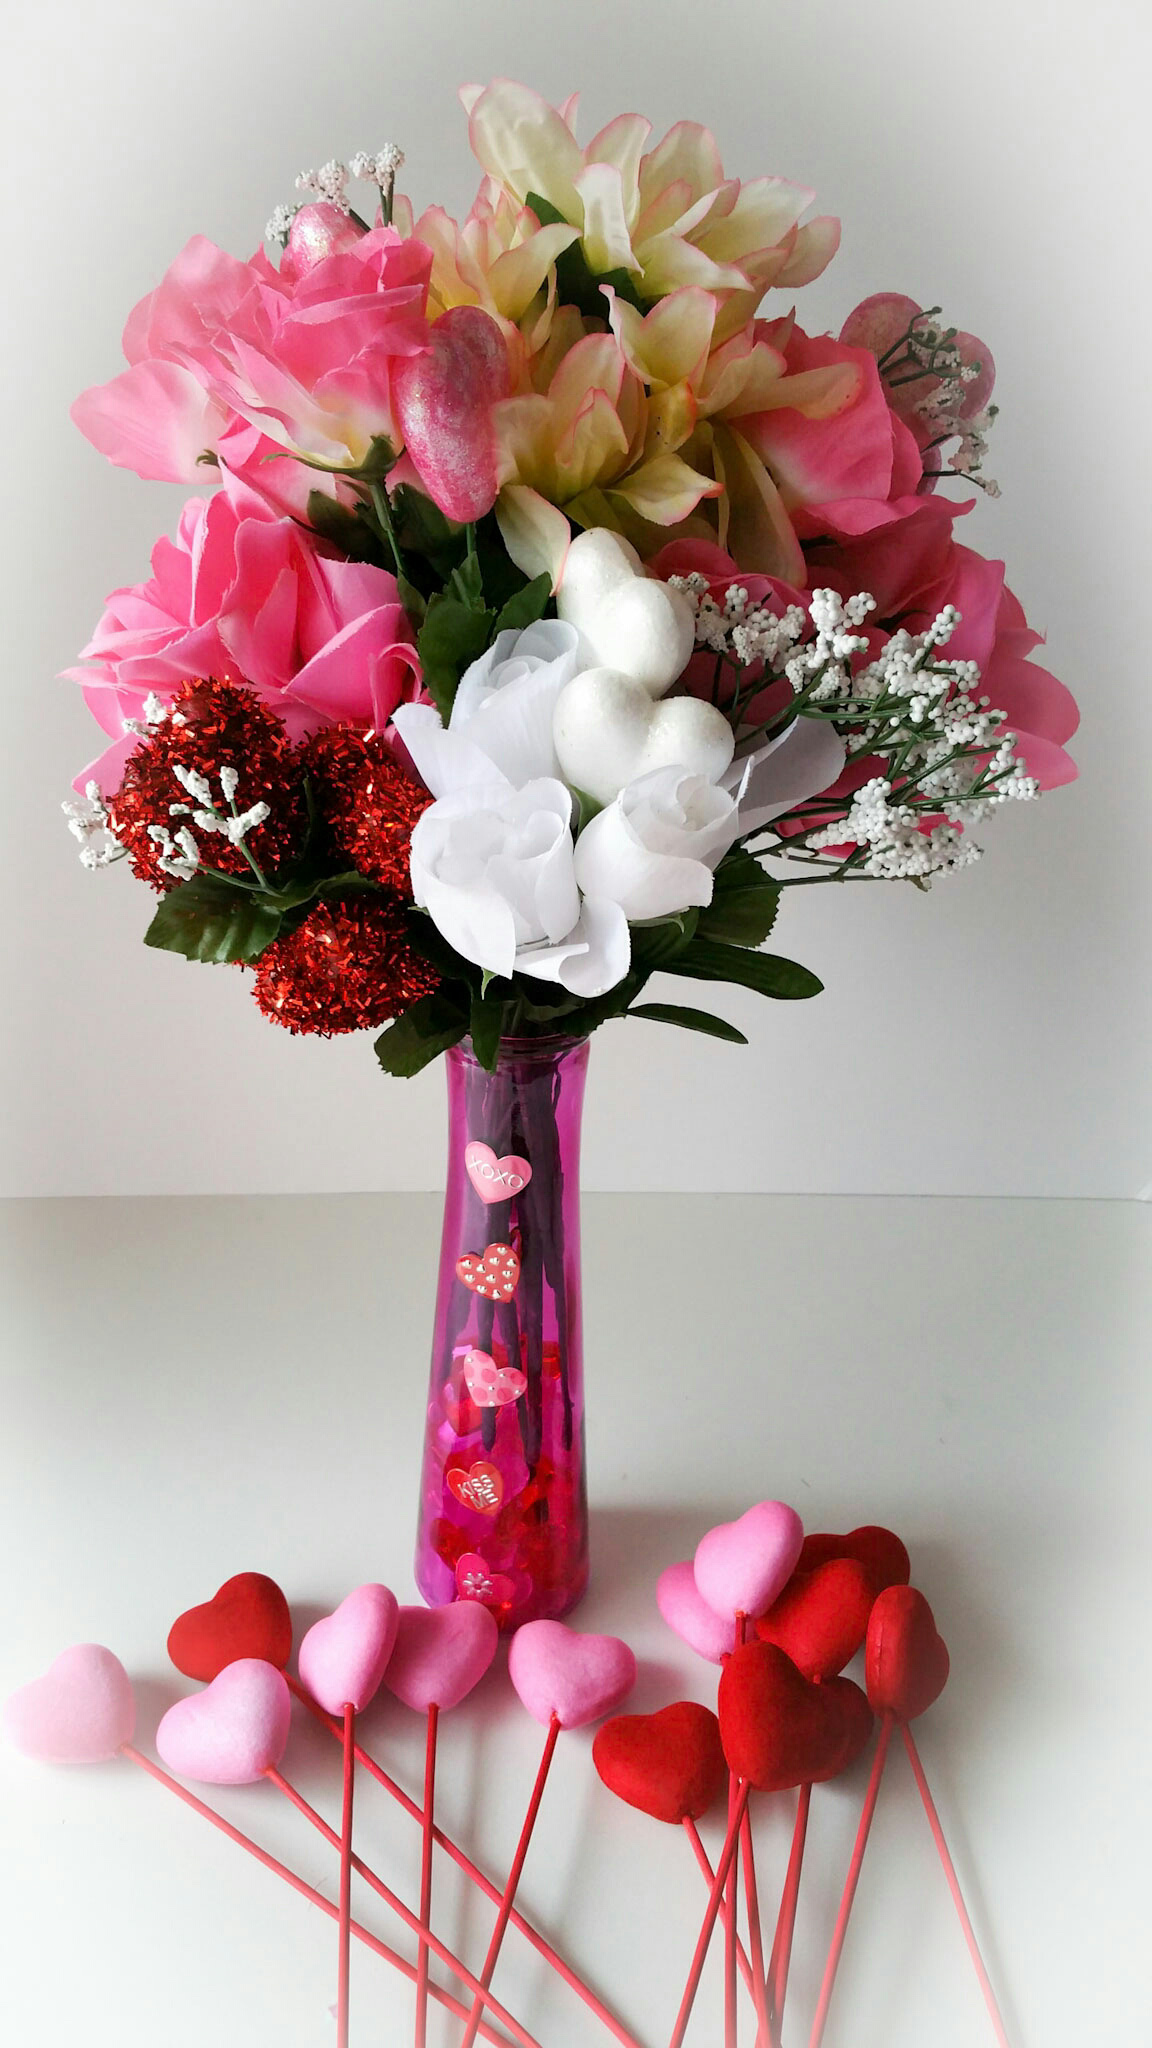 Super-Cute-DIY-Heart-Vase-Bouquet-Twelve-LiWBF